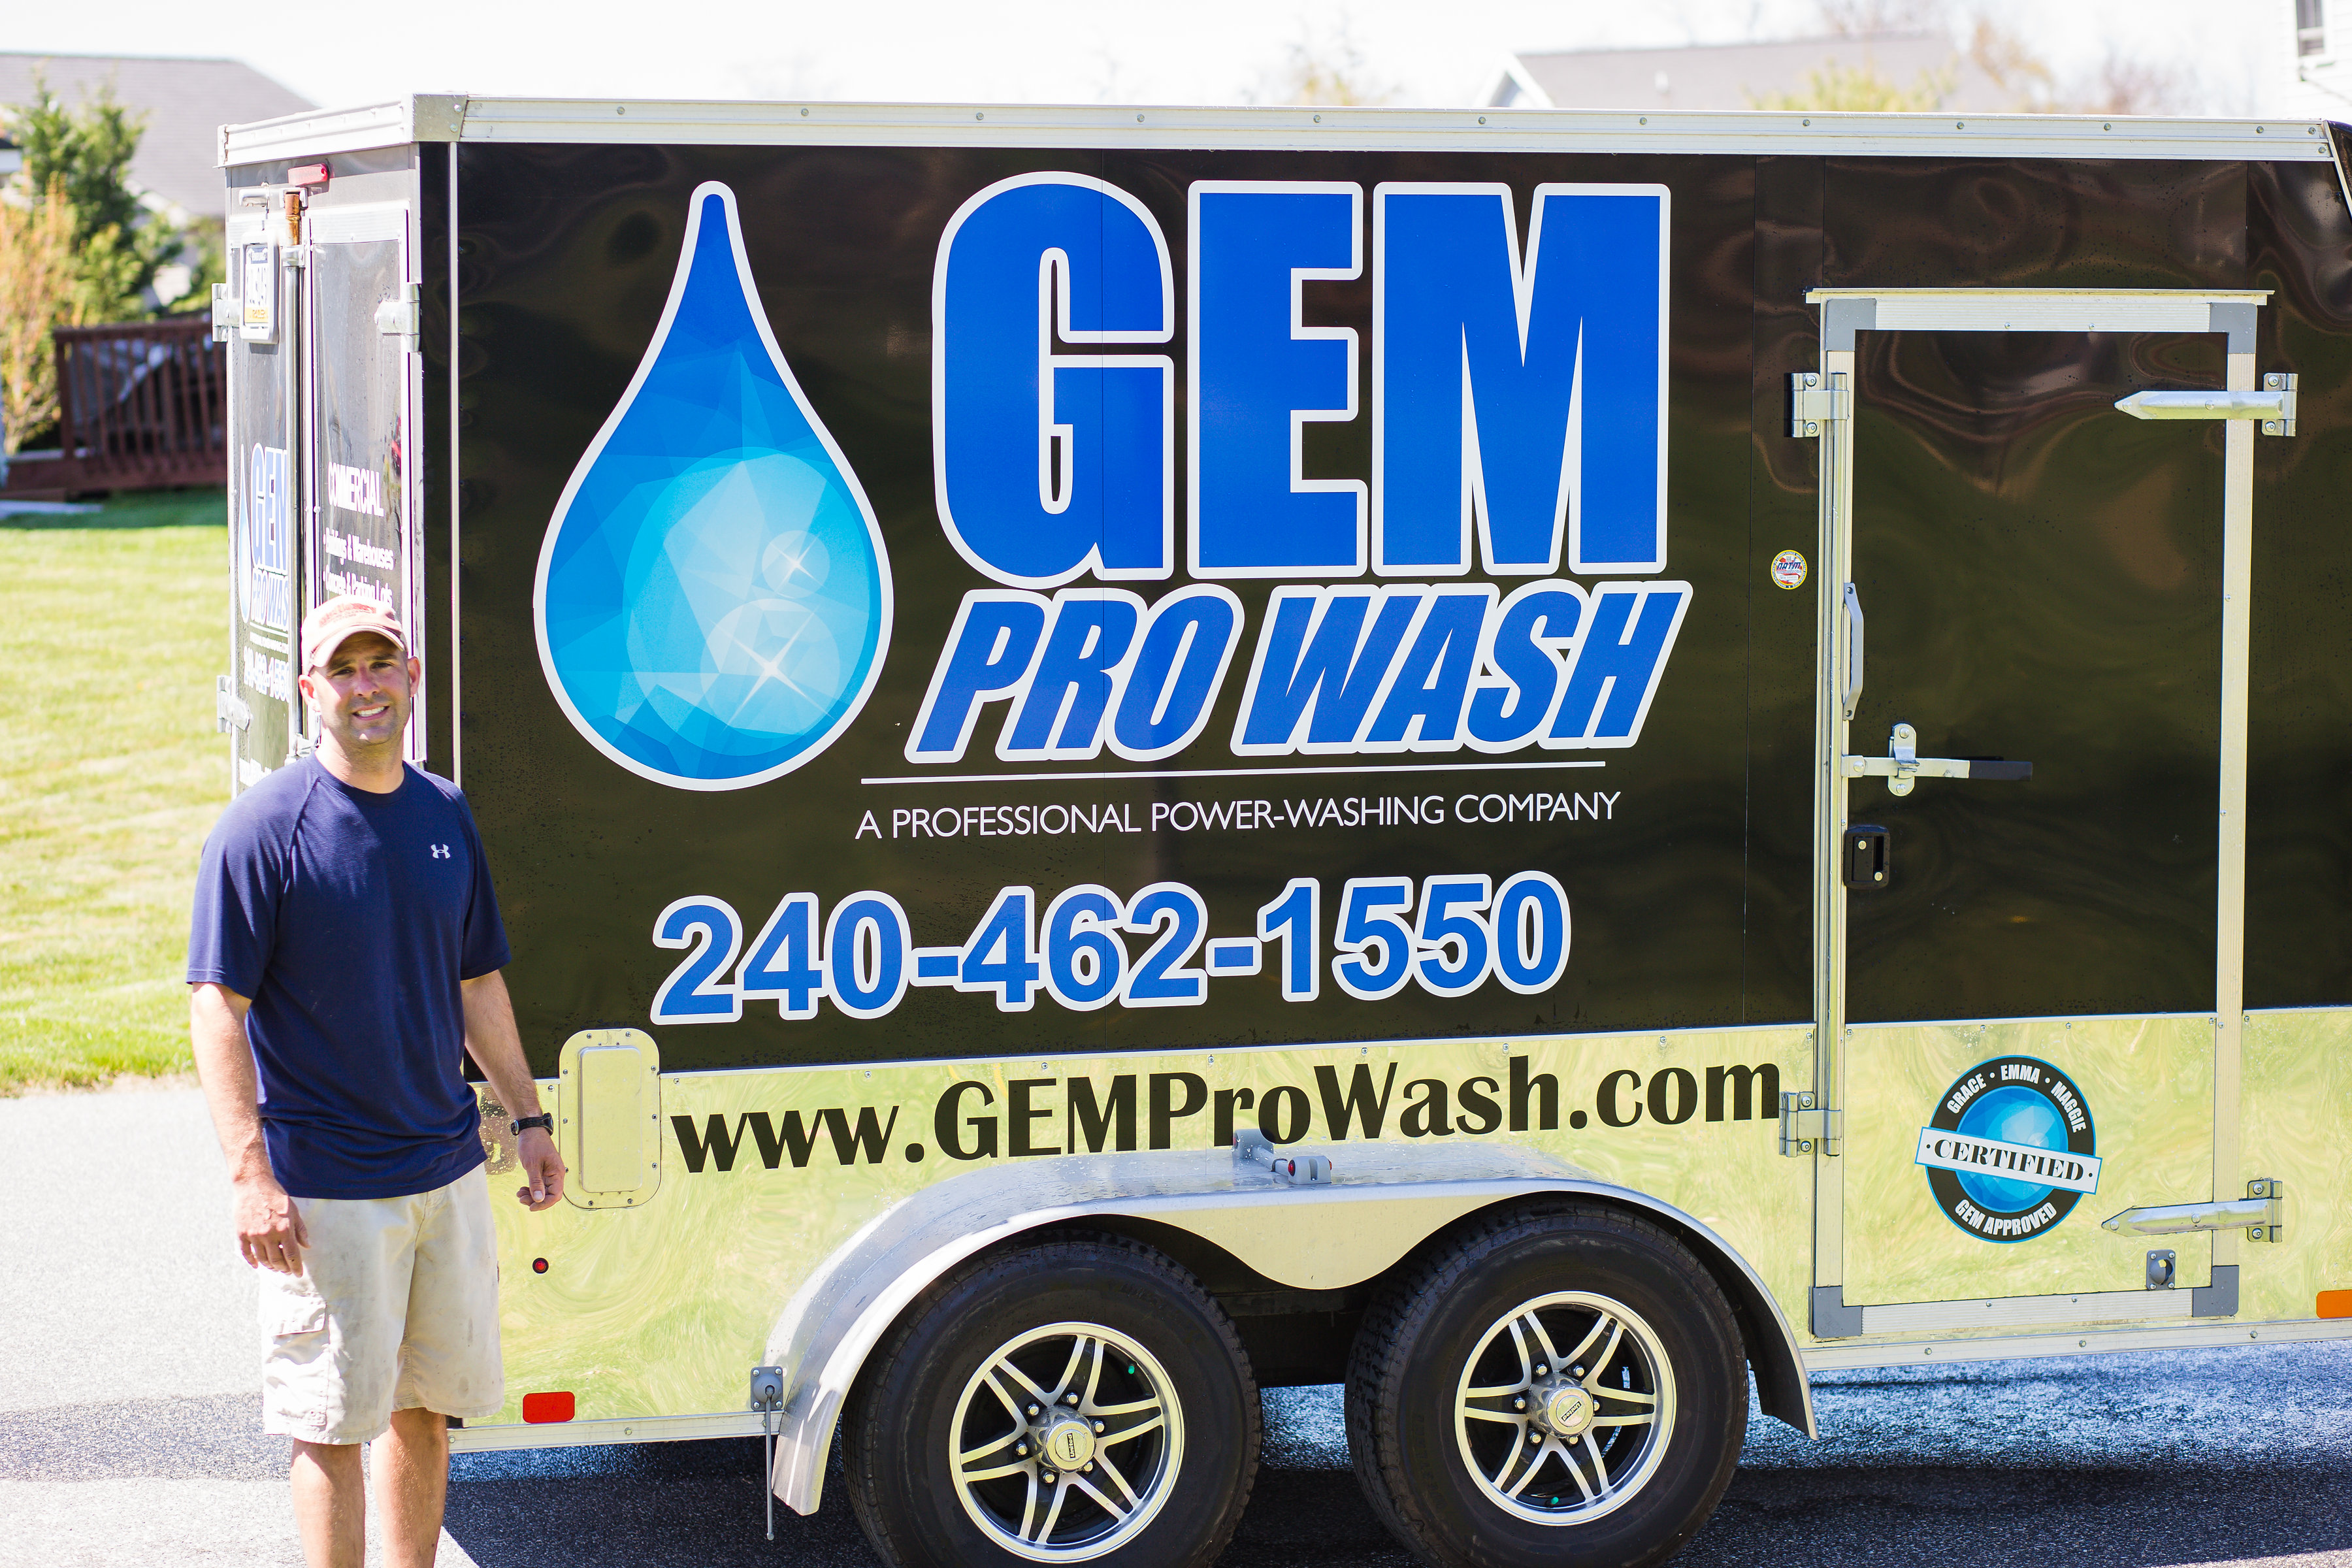 Gem Pro Wash | Soft Wash Roof Company in Chambersburg PA